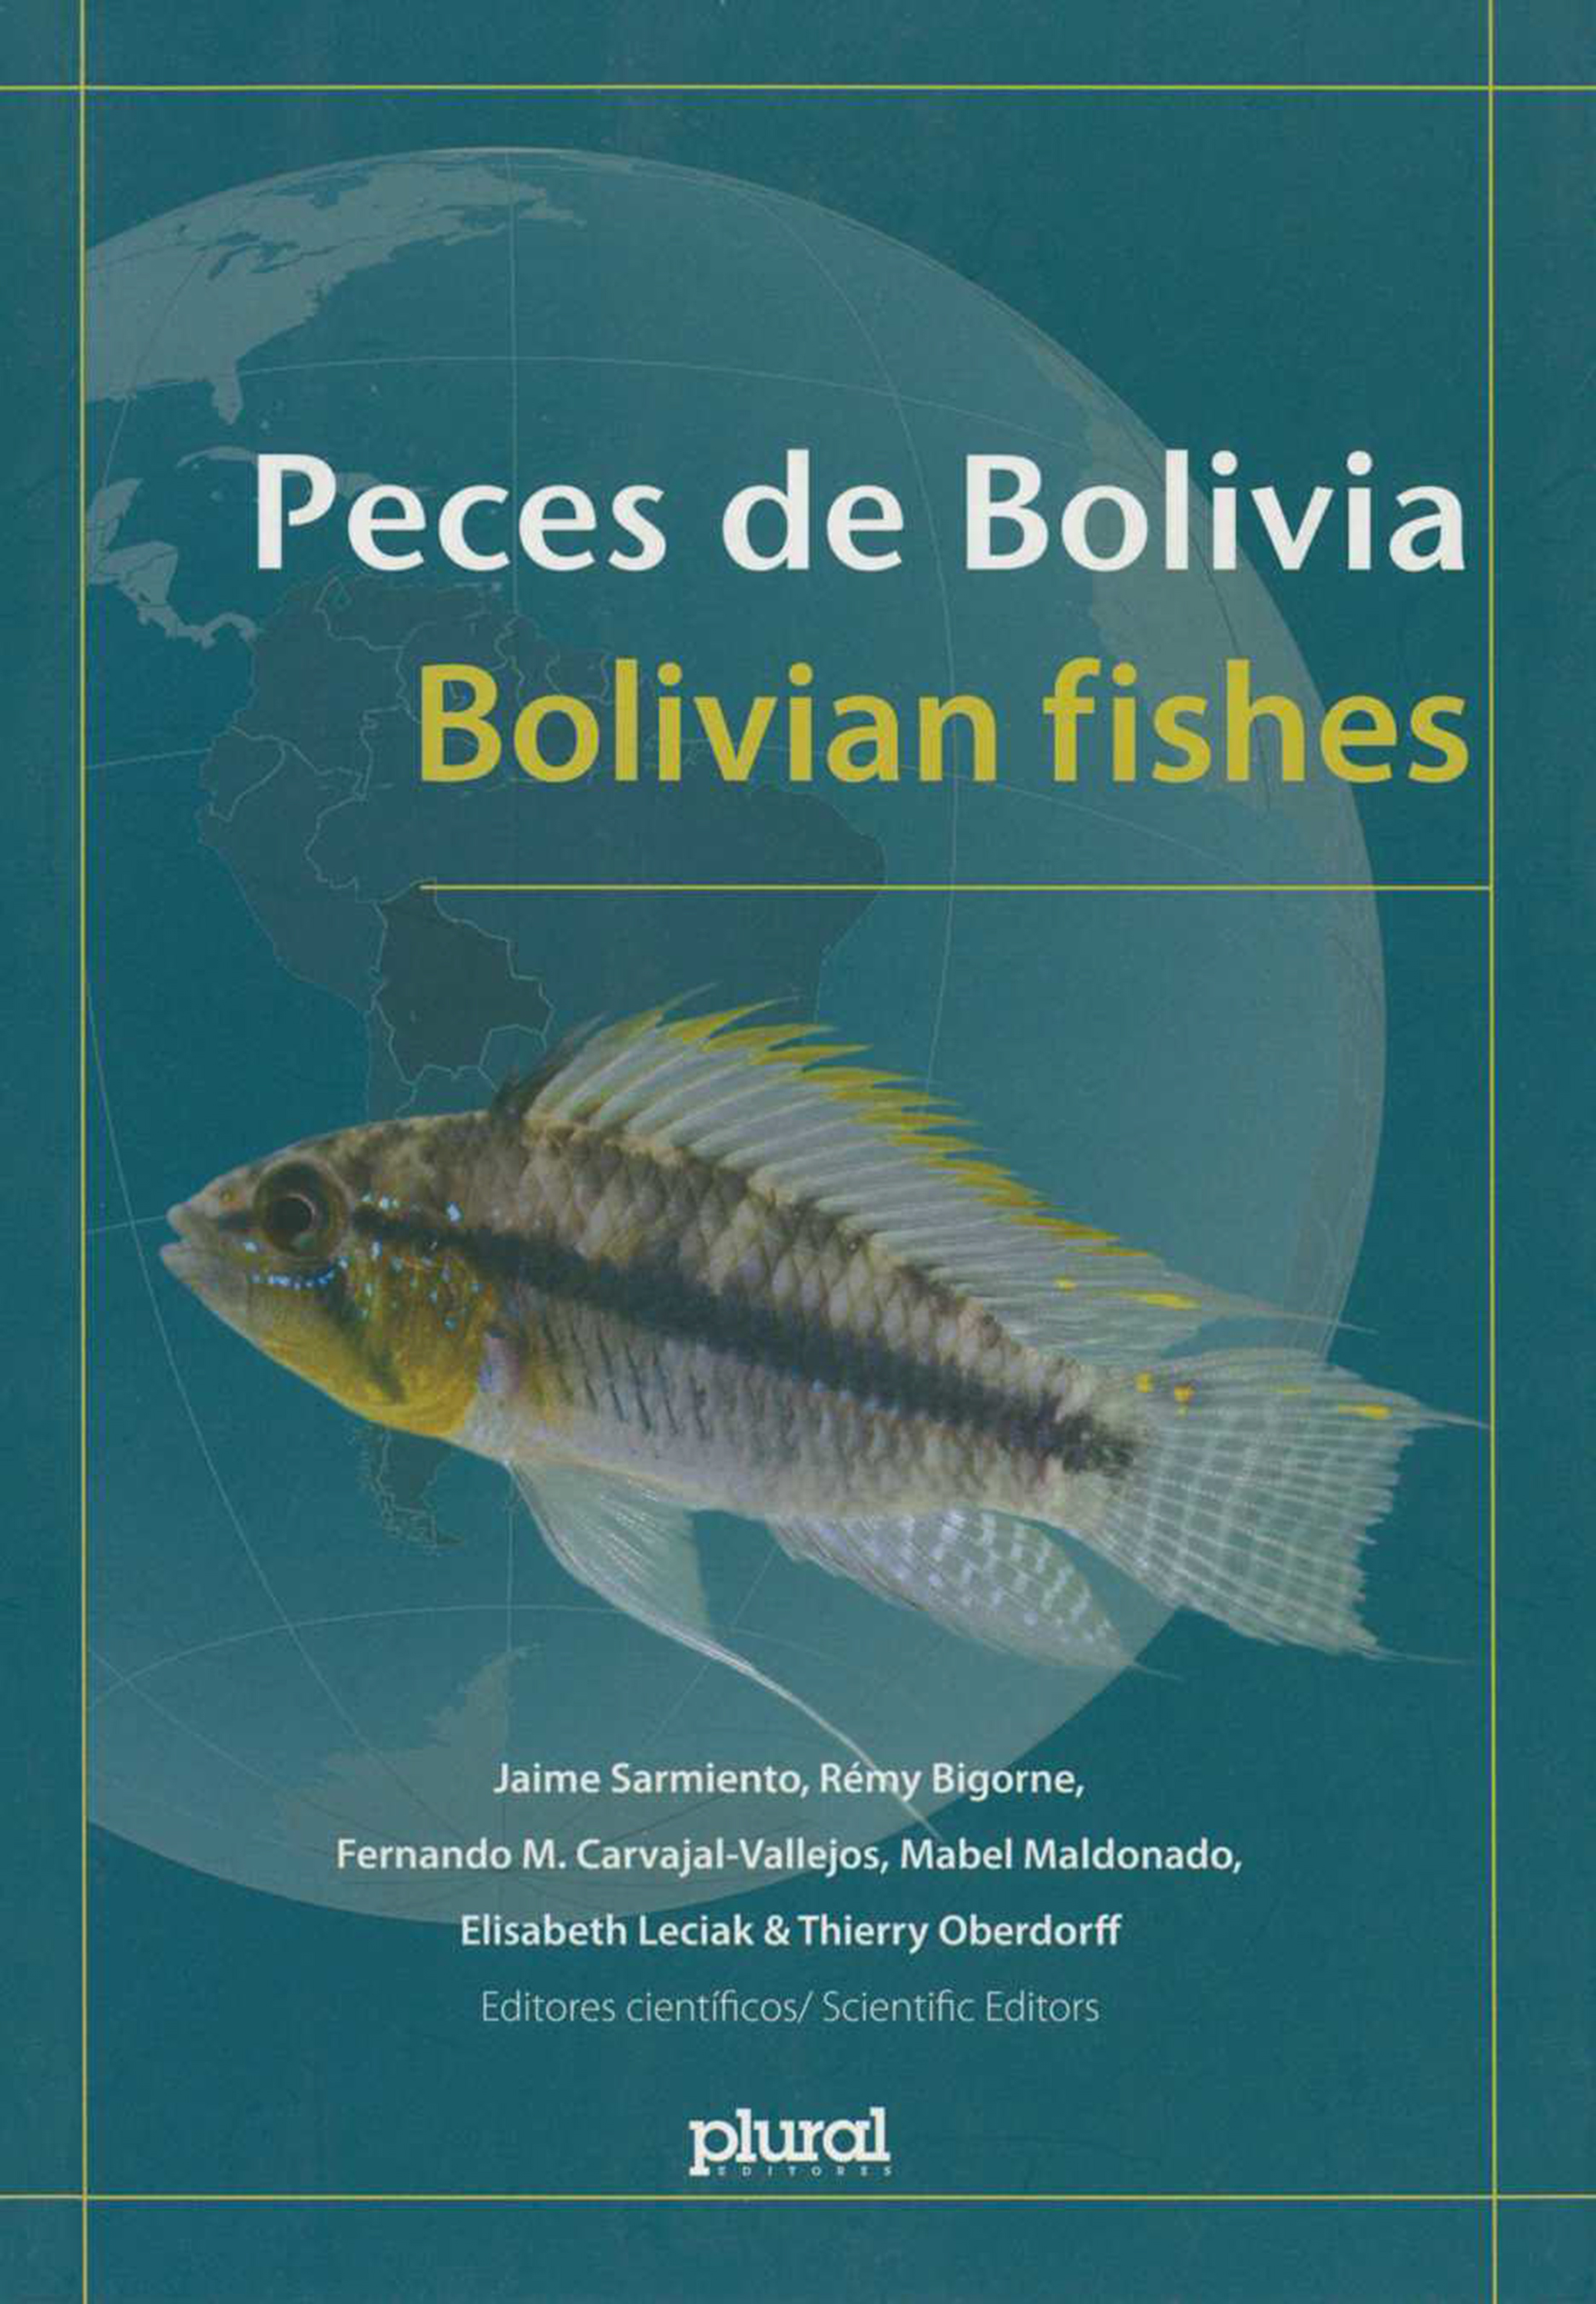 Peces de Bolivia. Bolivian fishes  - IRD Éditions